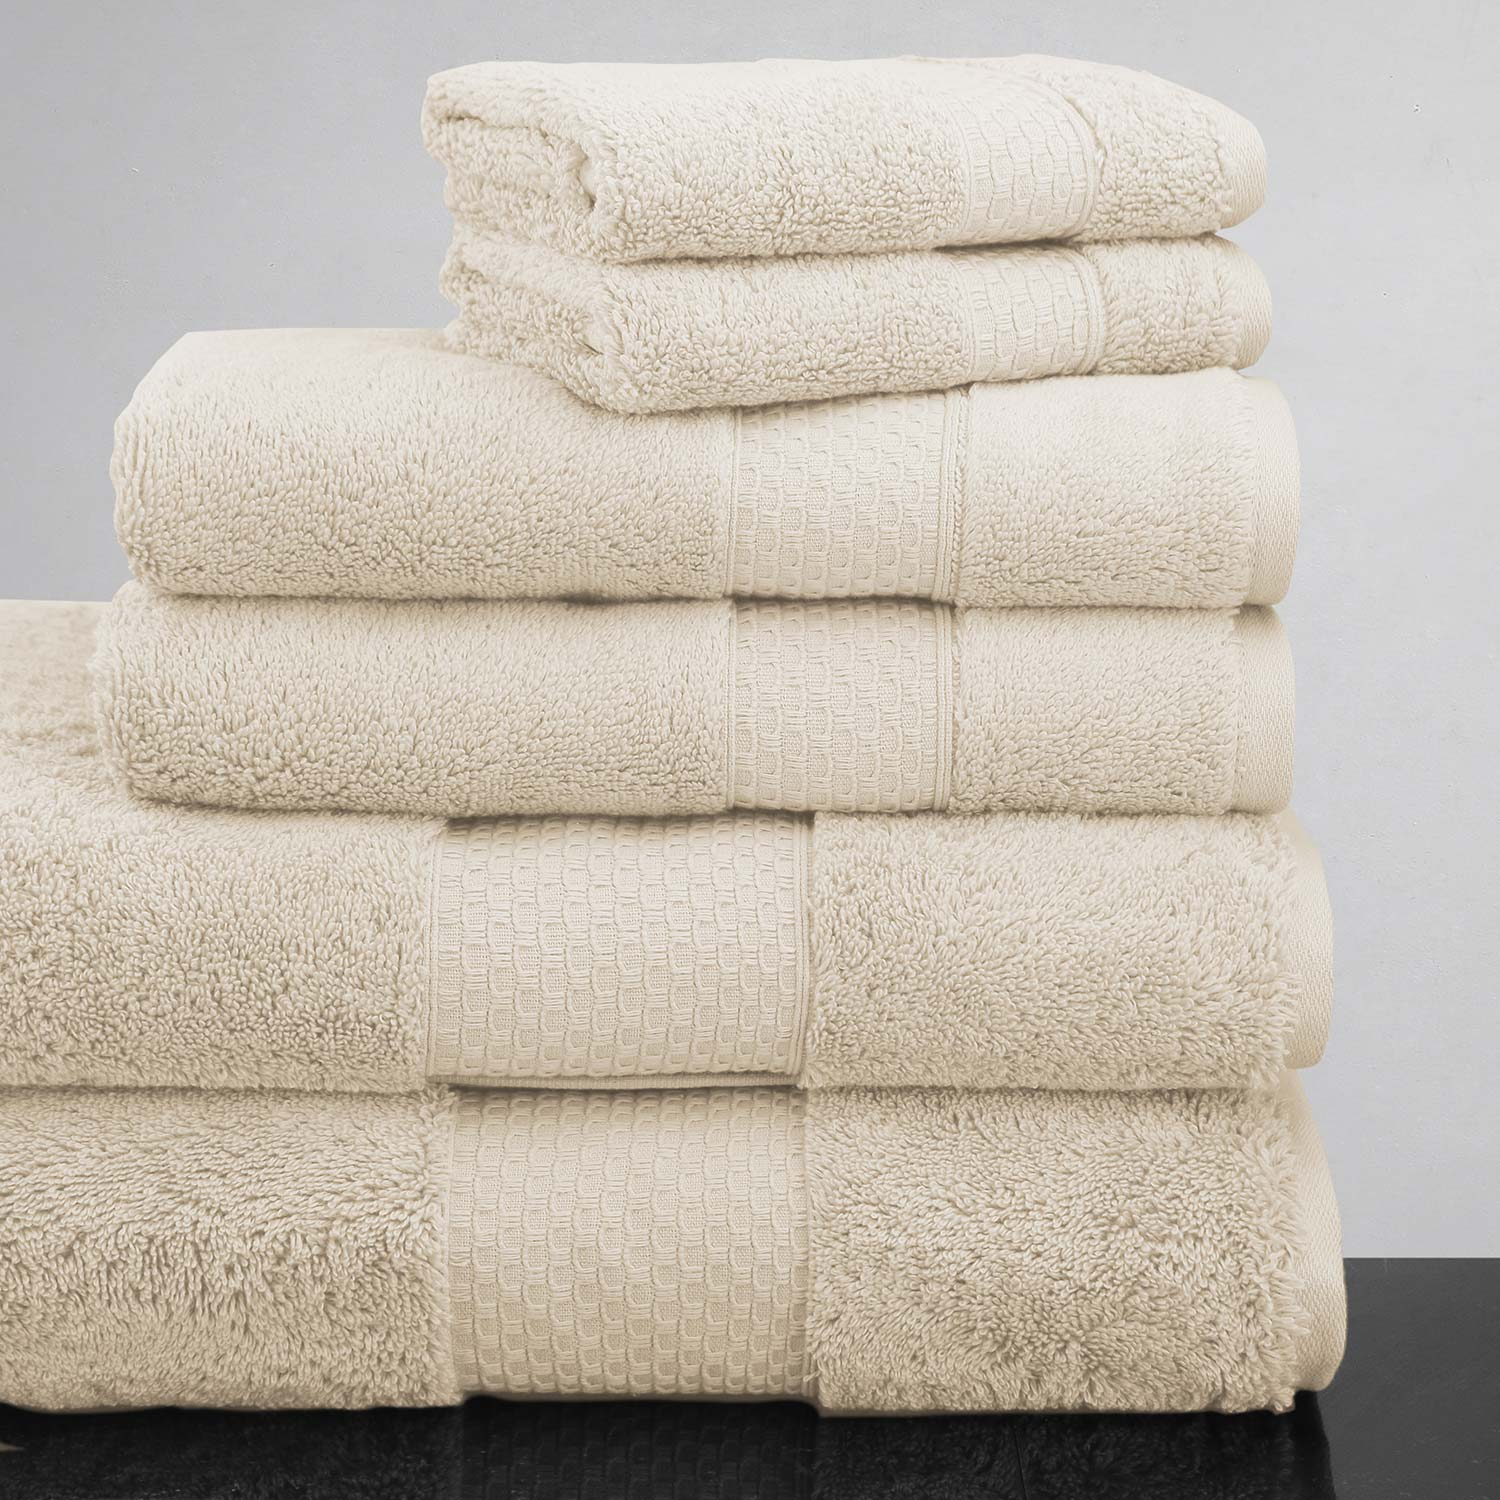 Luxor Linens Mariabella 6-Piece Towel Set